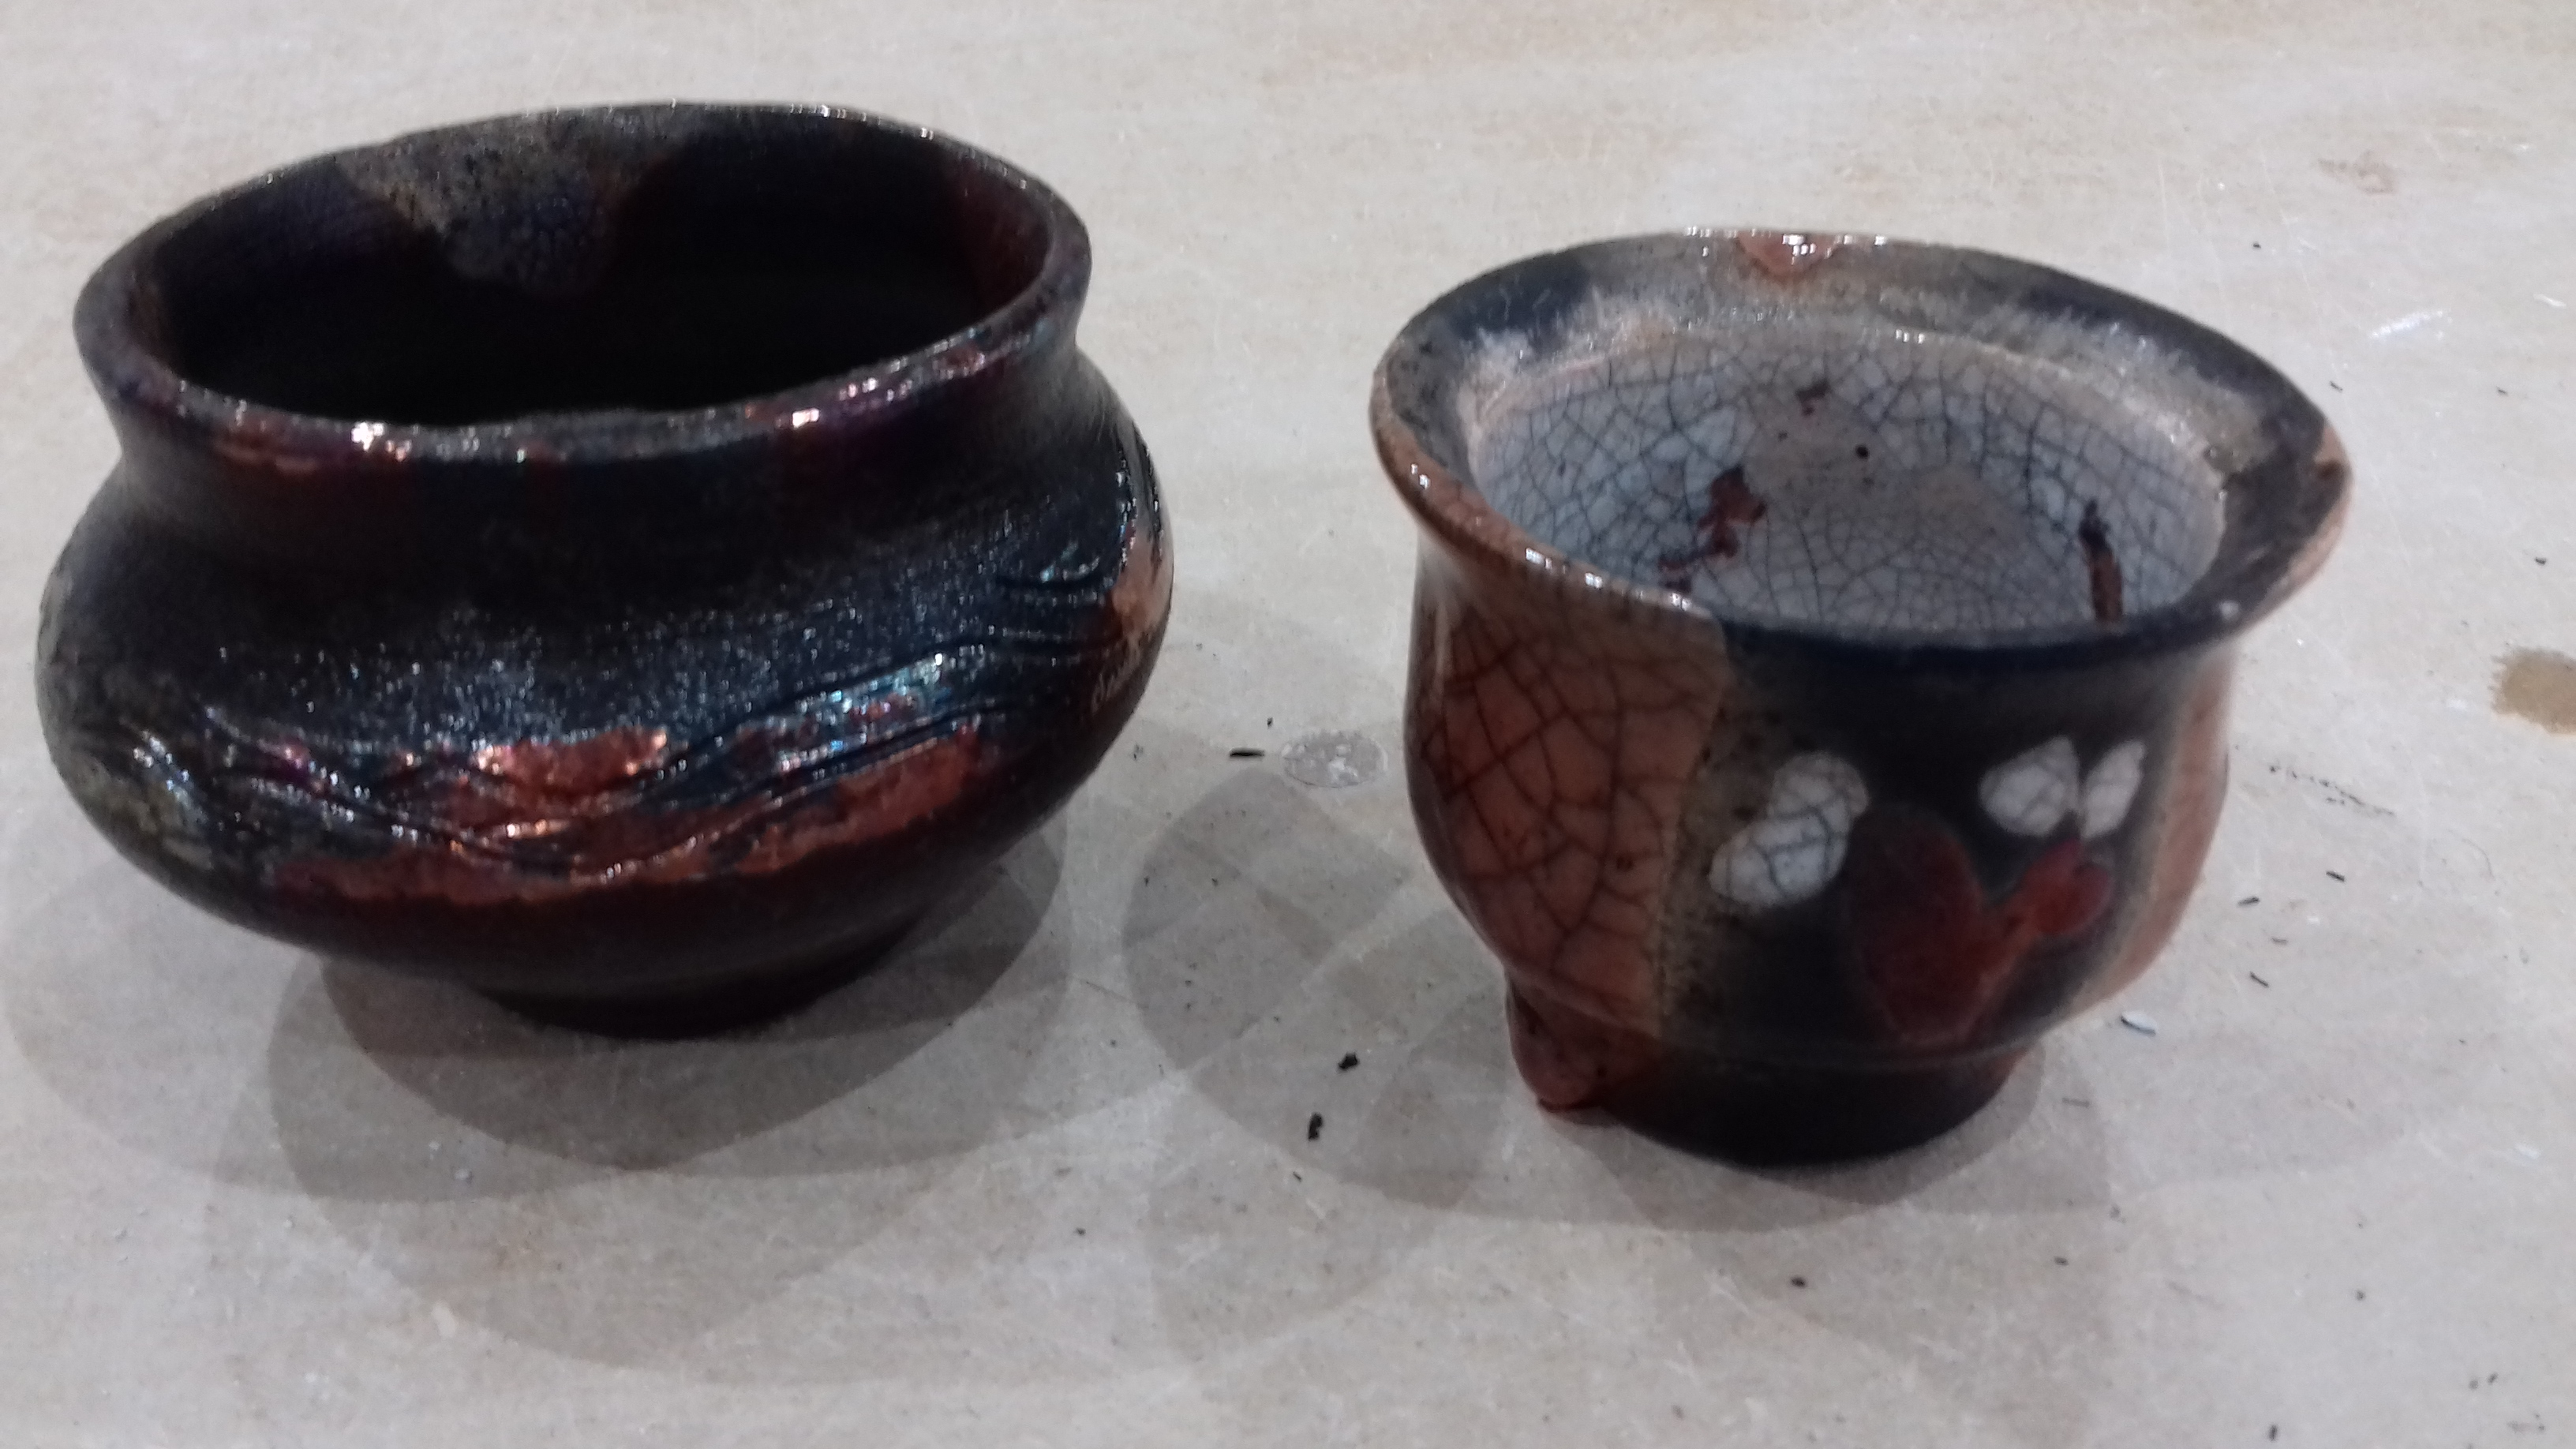 Finished pots